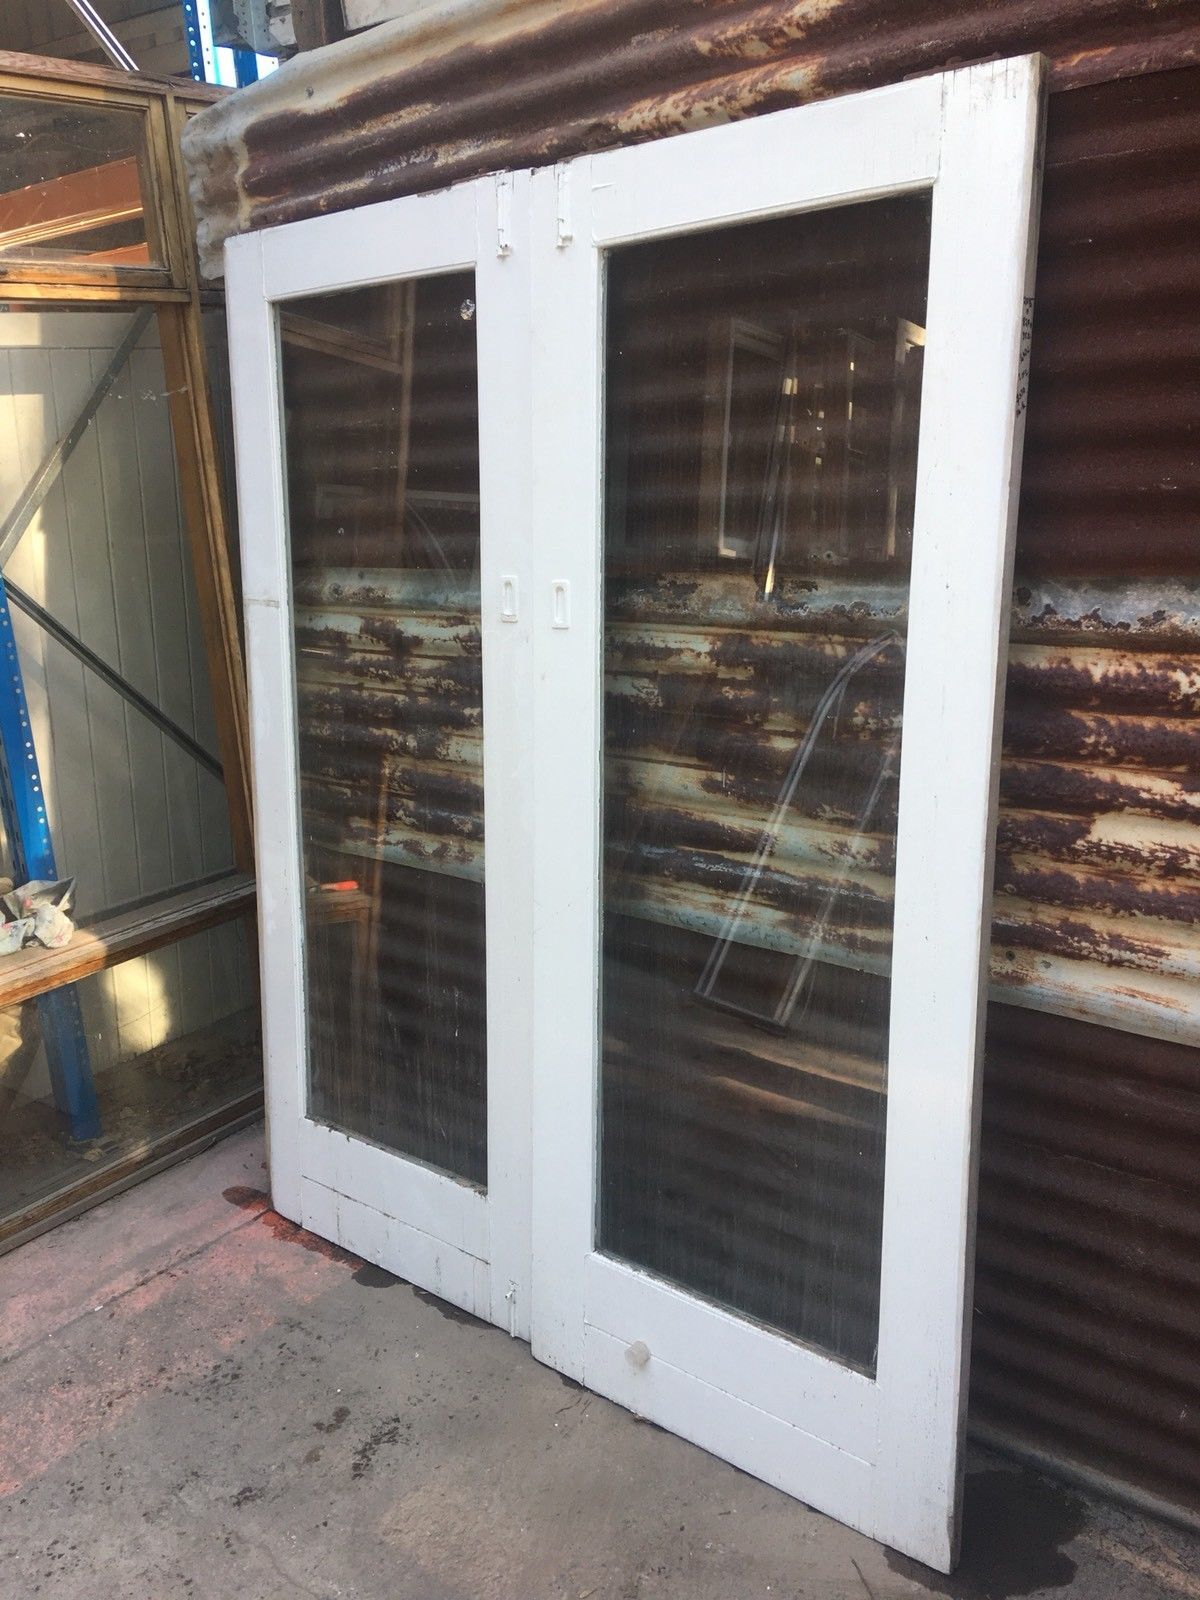 Solid Timber Sliding Doors With Clear Glass Panels 1640w X 2035h X 35d